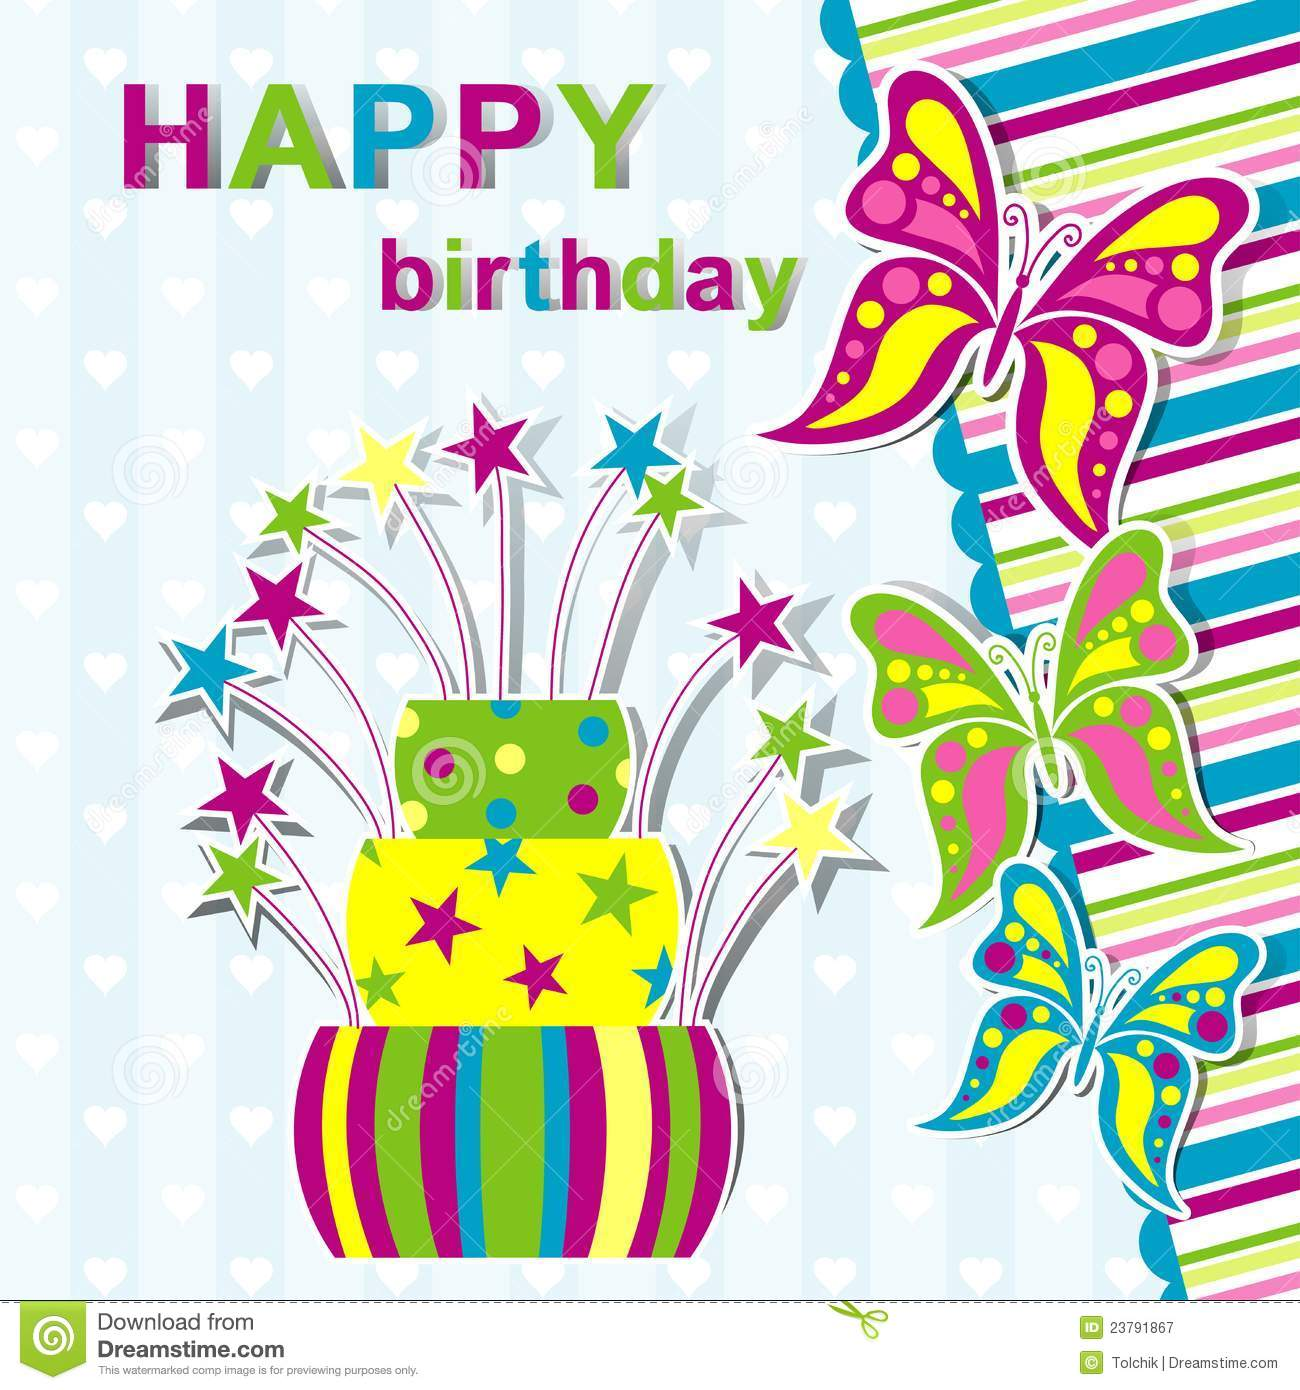 Template Greeting Card Royalty Free Stock Image: Template Birthday Greeting Card Royalty Free Stock